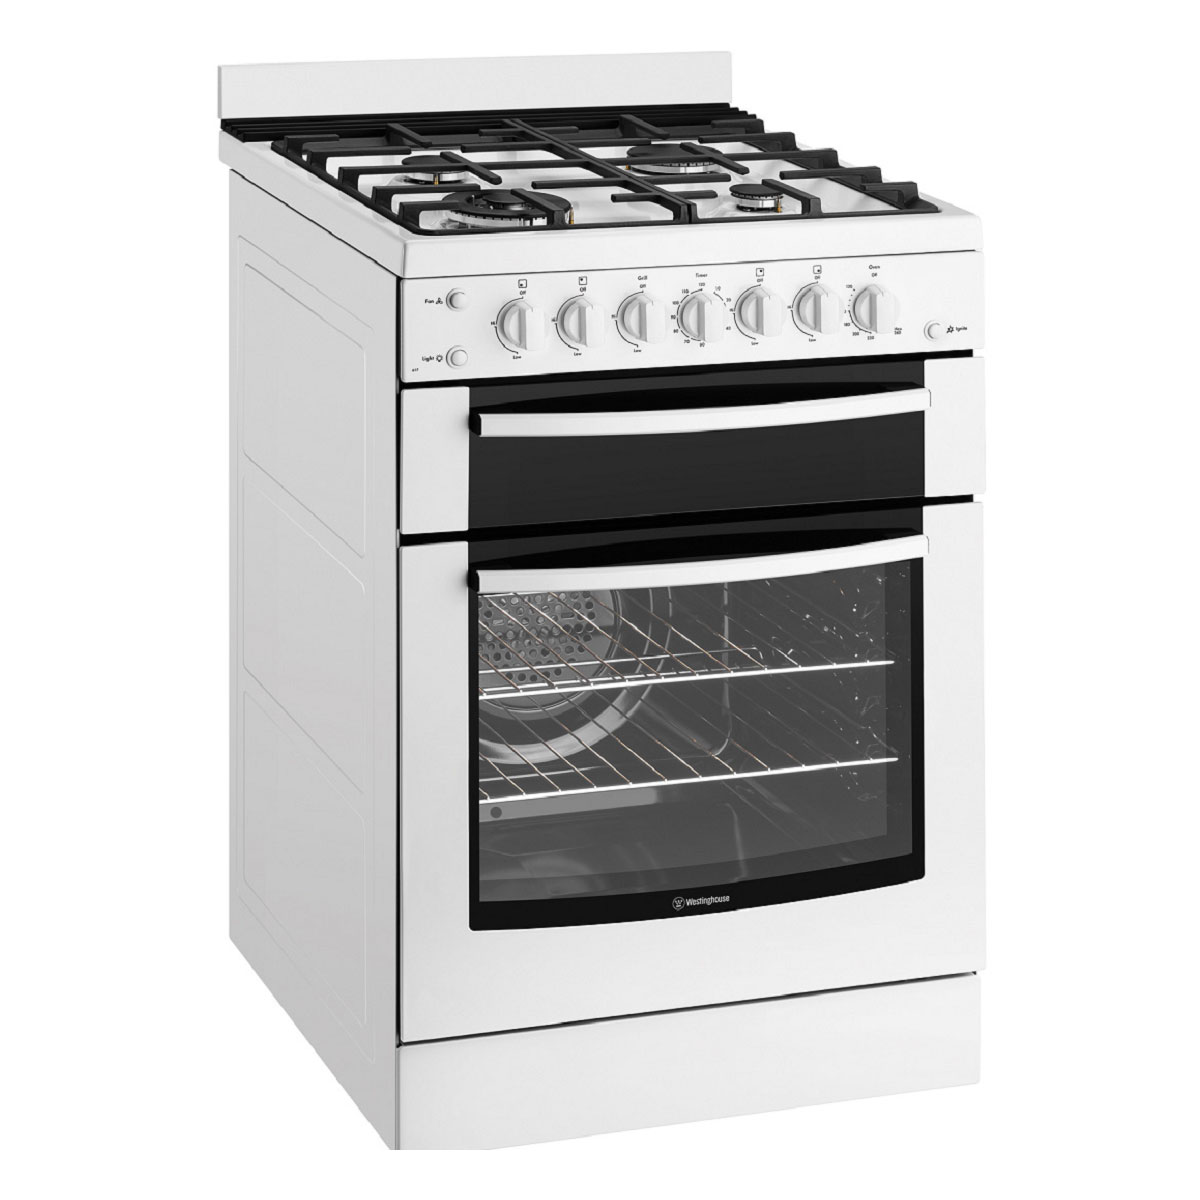 Westinghouse WFG617WA Freestanding Gas Oven/Stove